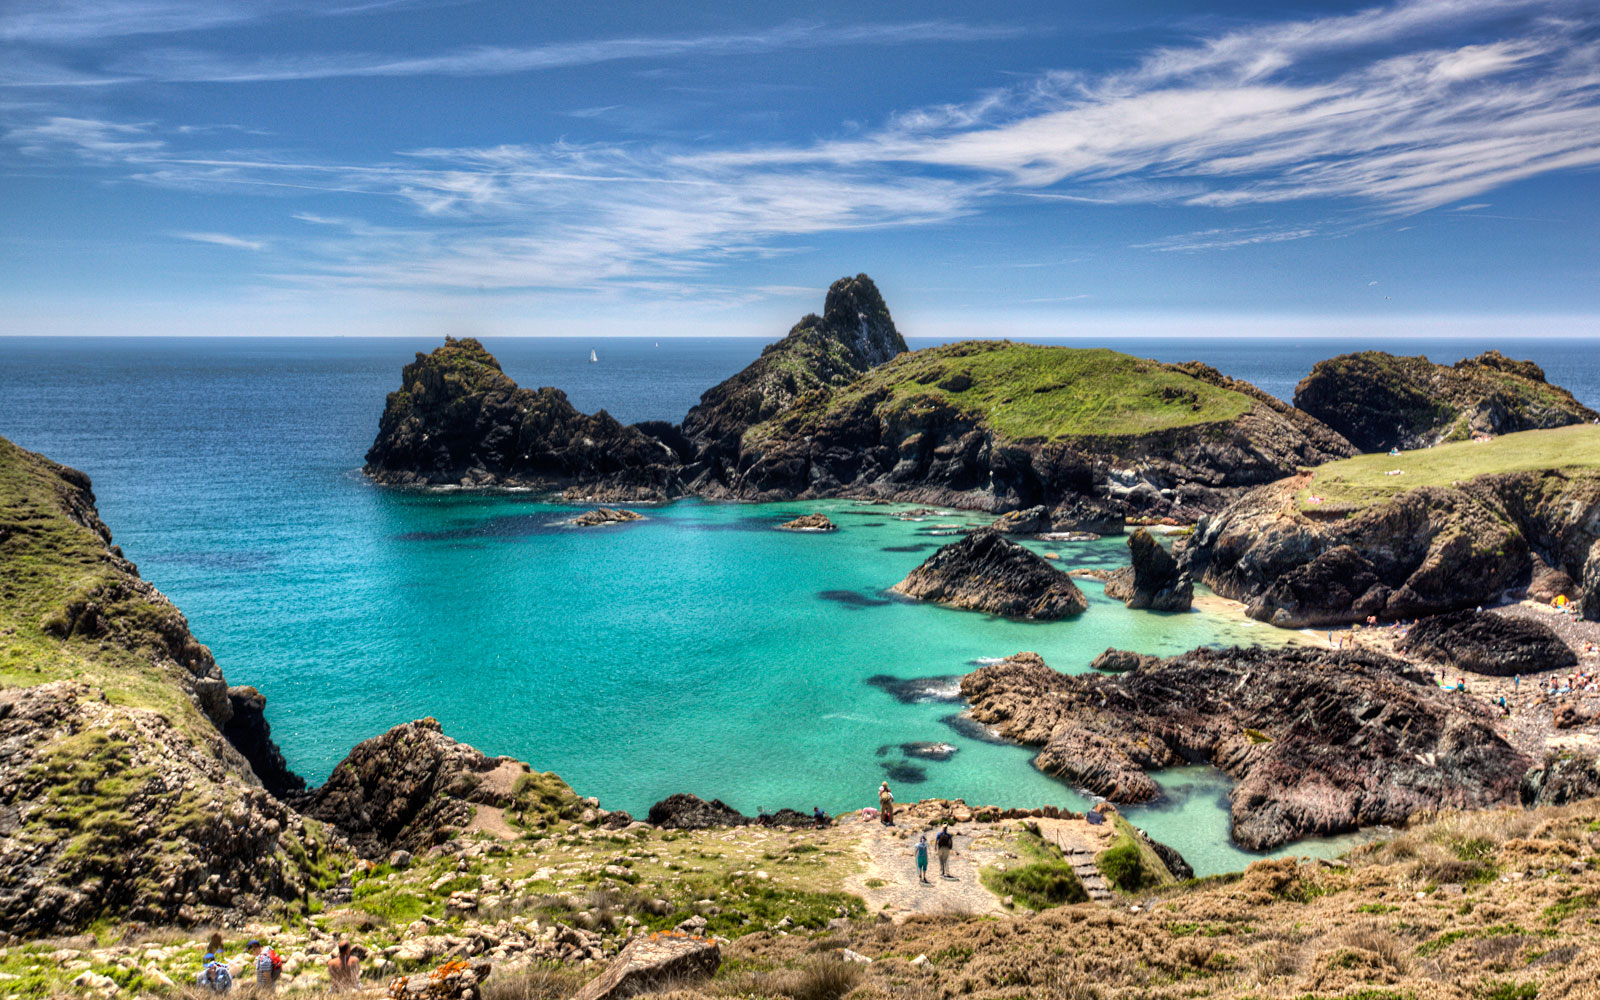 The Staycation- Falling in love with Cornwall